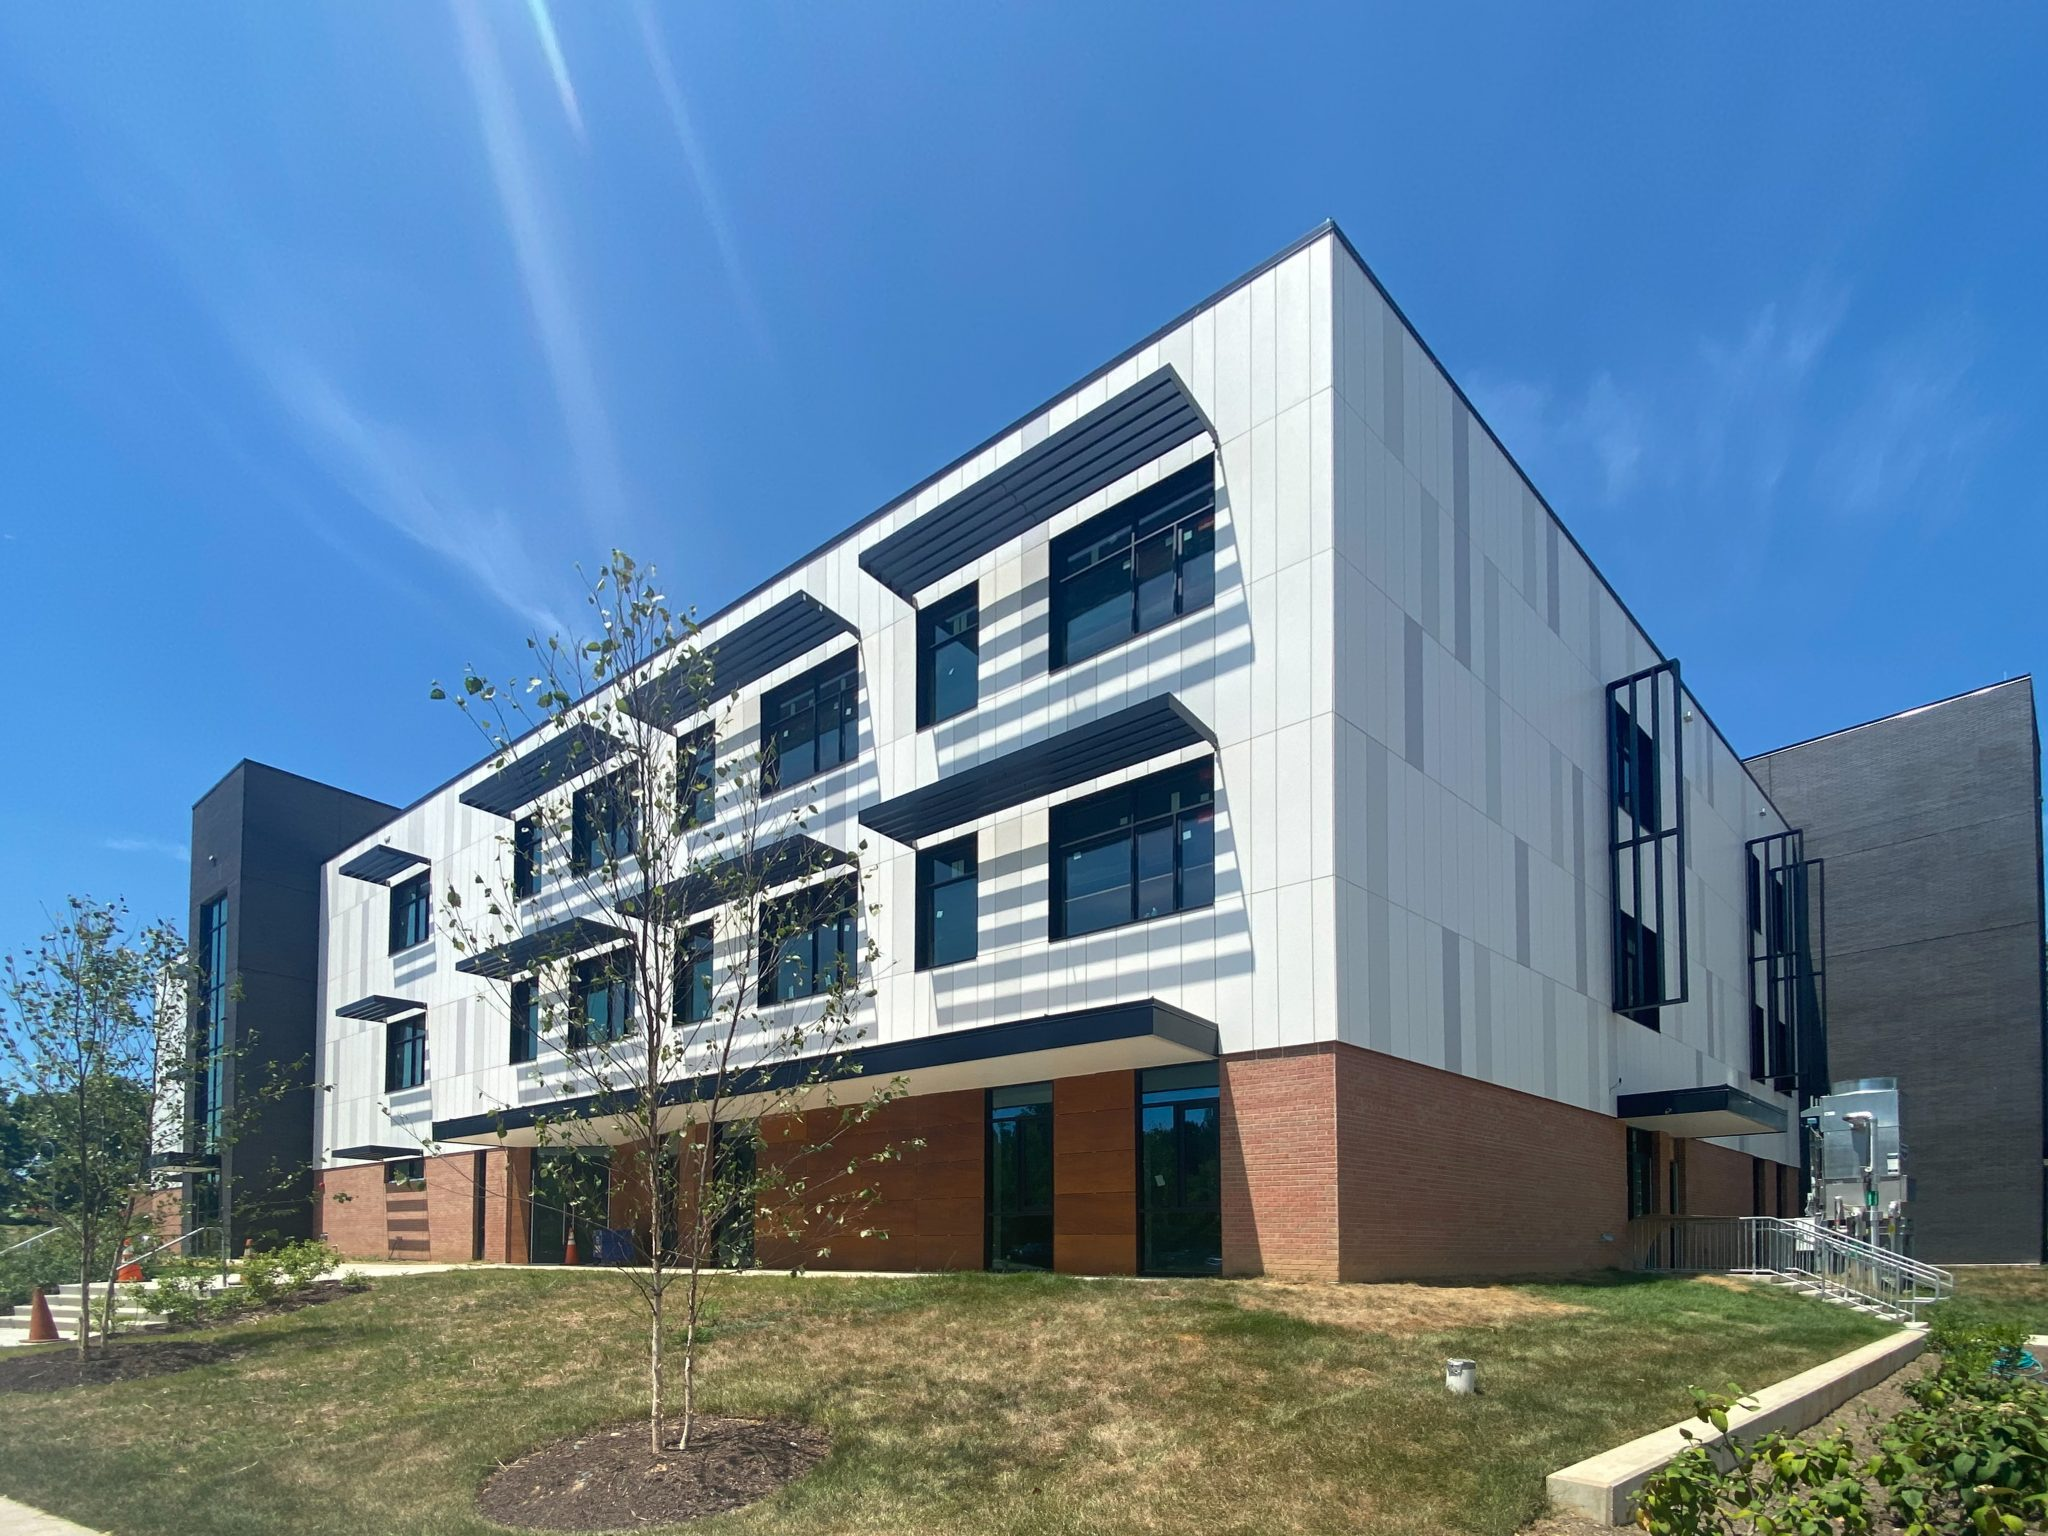 The New Upper School at Sandy Spring Friends School—A Model of Energy-Efficiency and Innovation